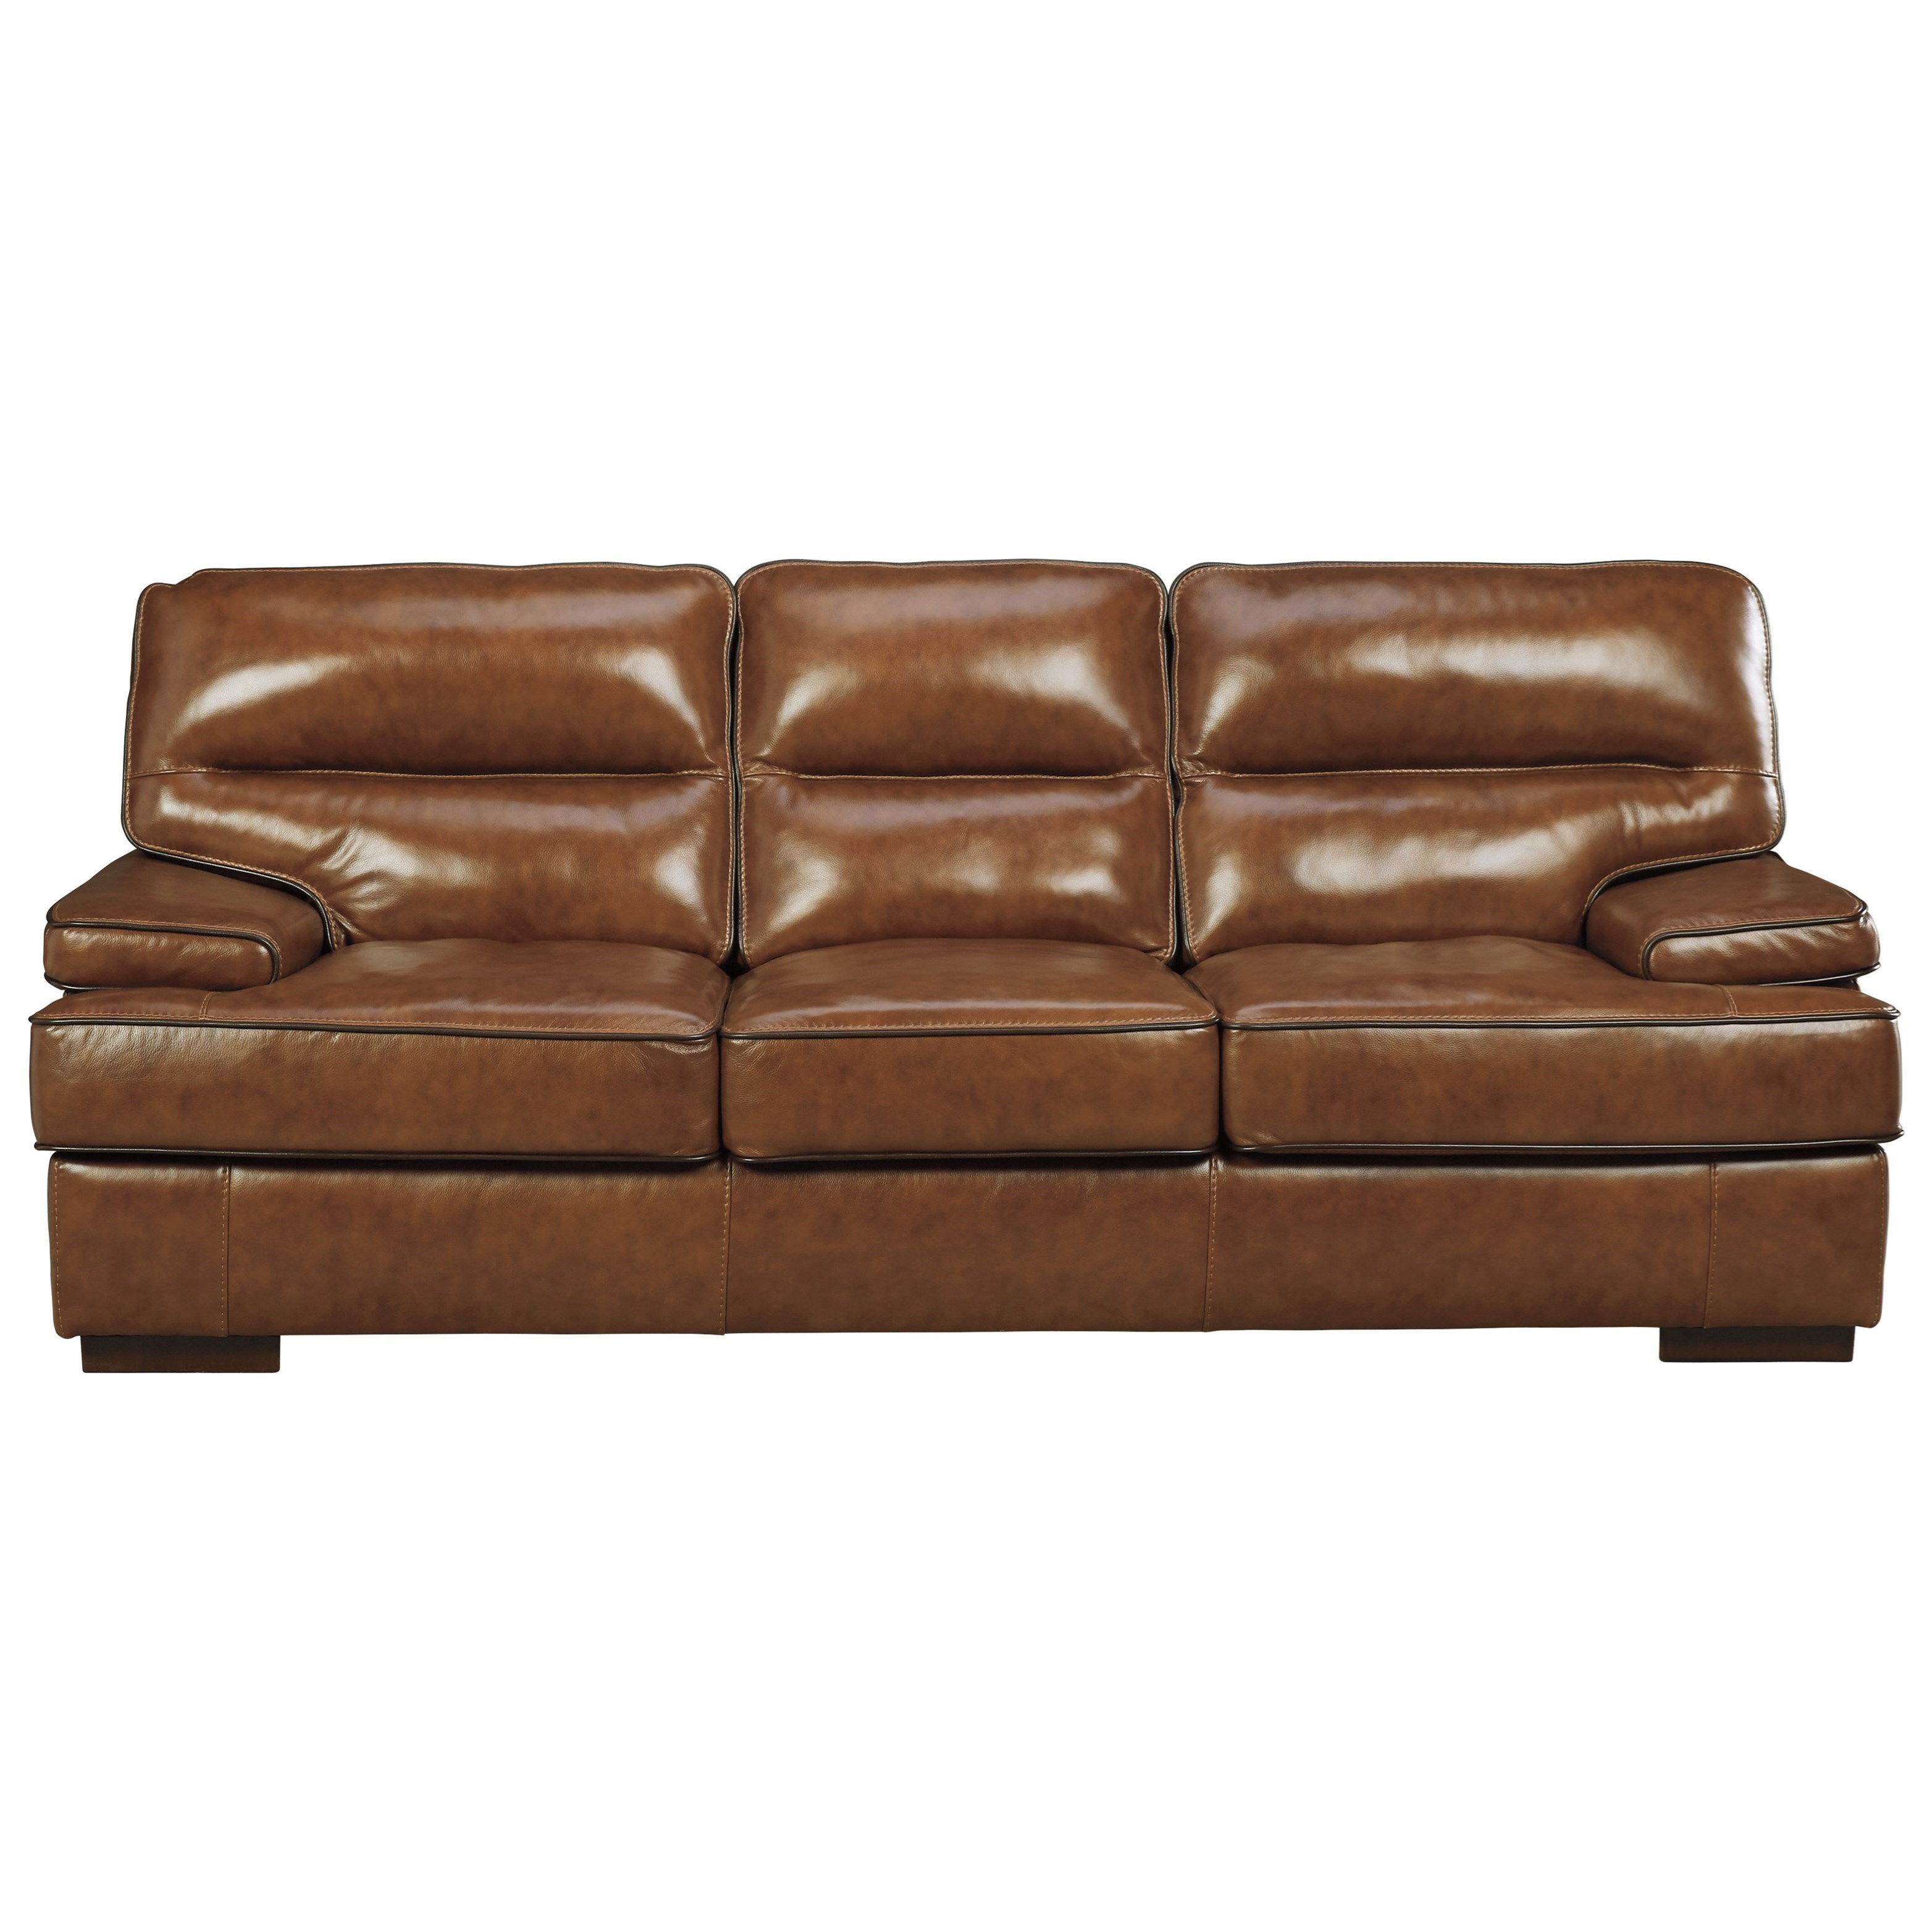 Signature design by ashley palner contemporary leather for Ashley leather sofa